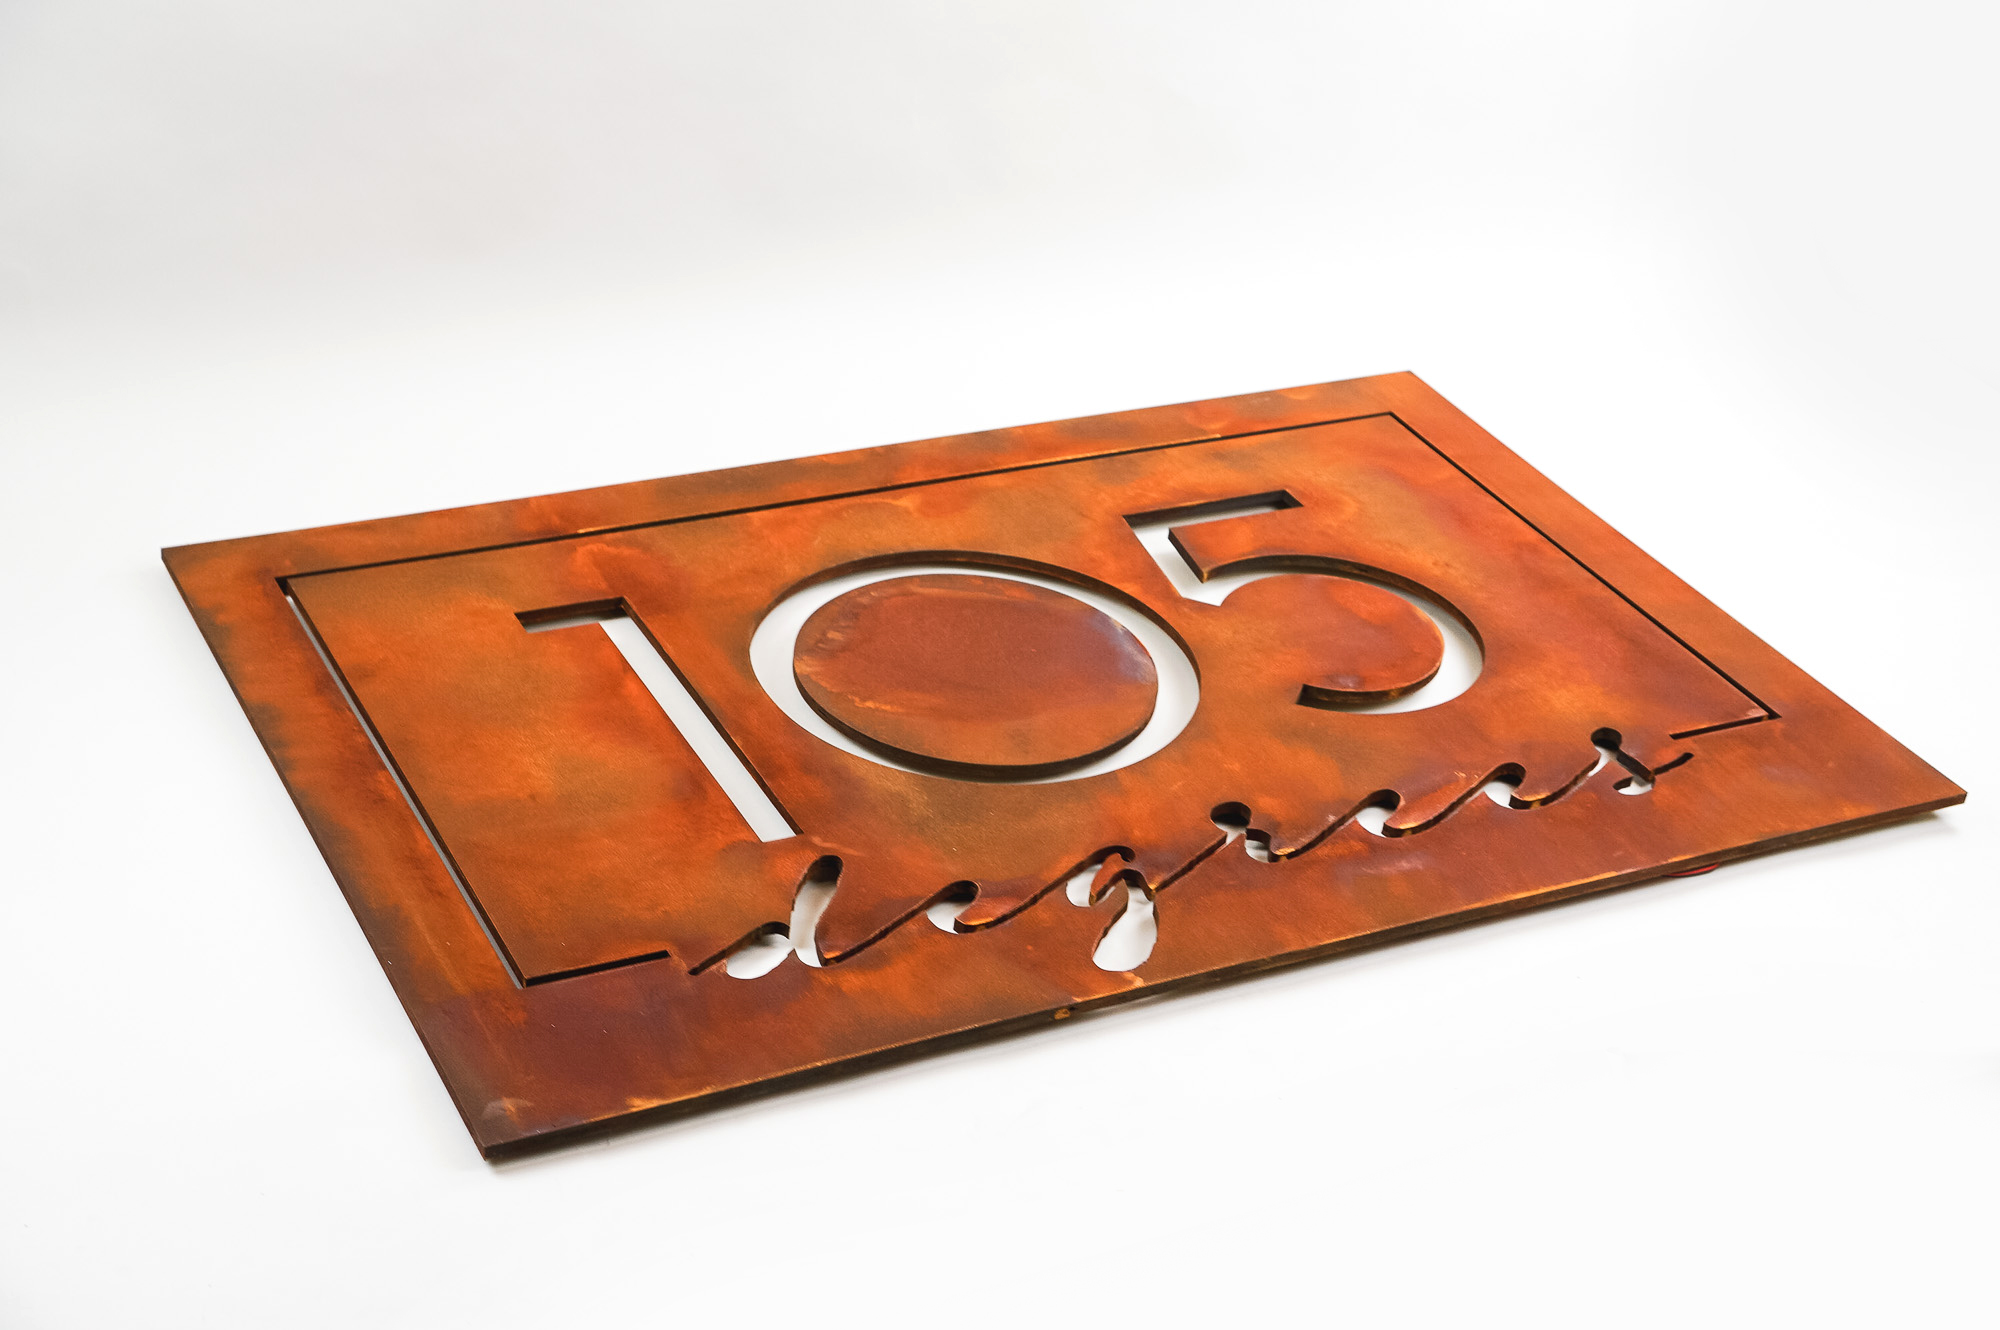 Rusted metal illuminated sign for 105 Degrees, a hot yoga studio at Newtown Athletic Club, a premiere family fitness and wellness center serving residents of Newtown, PA